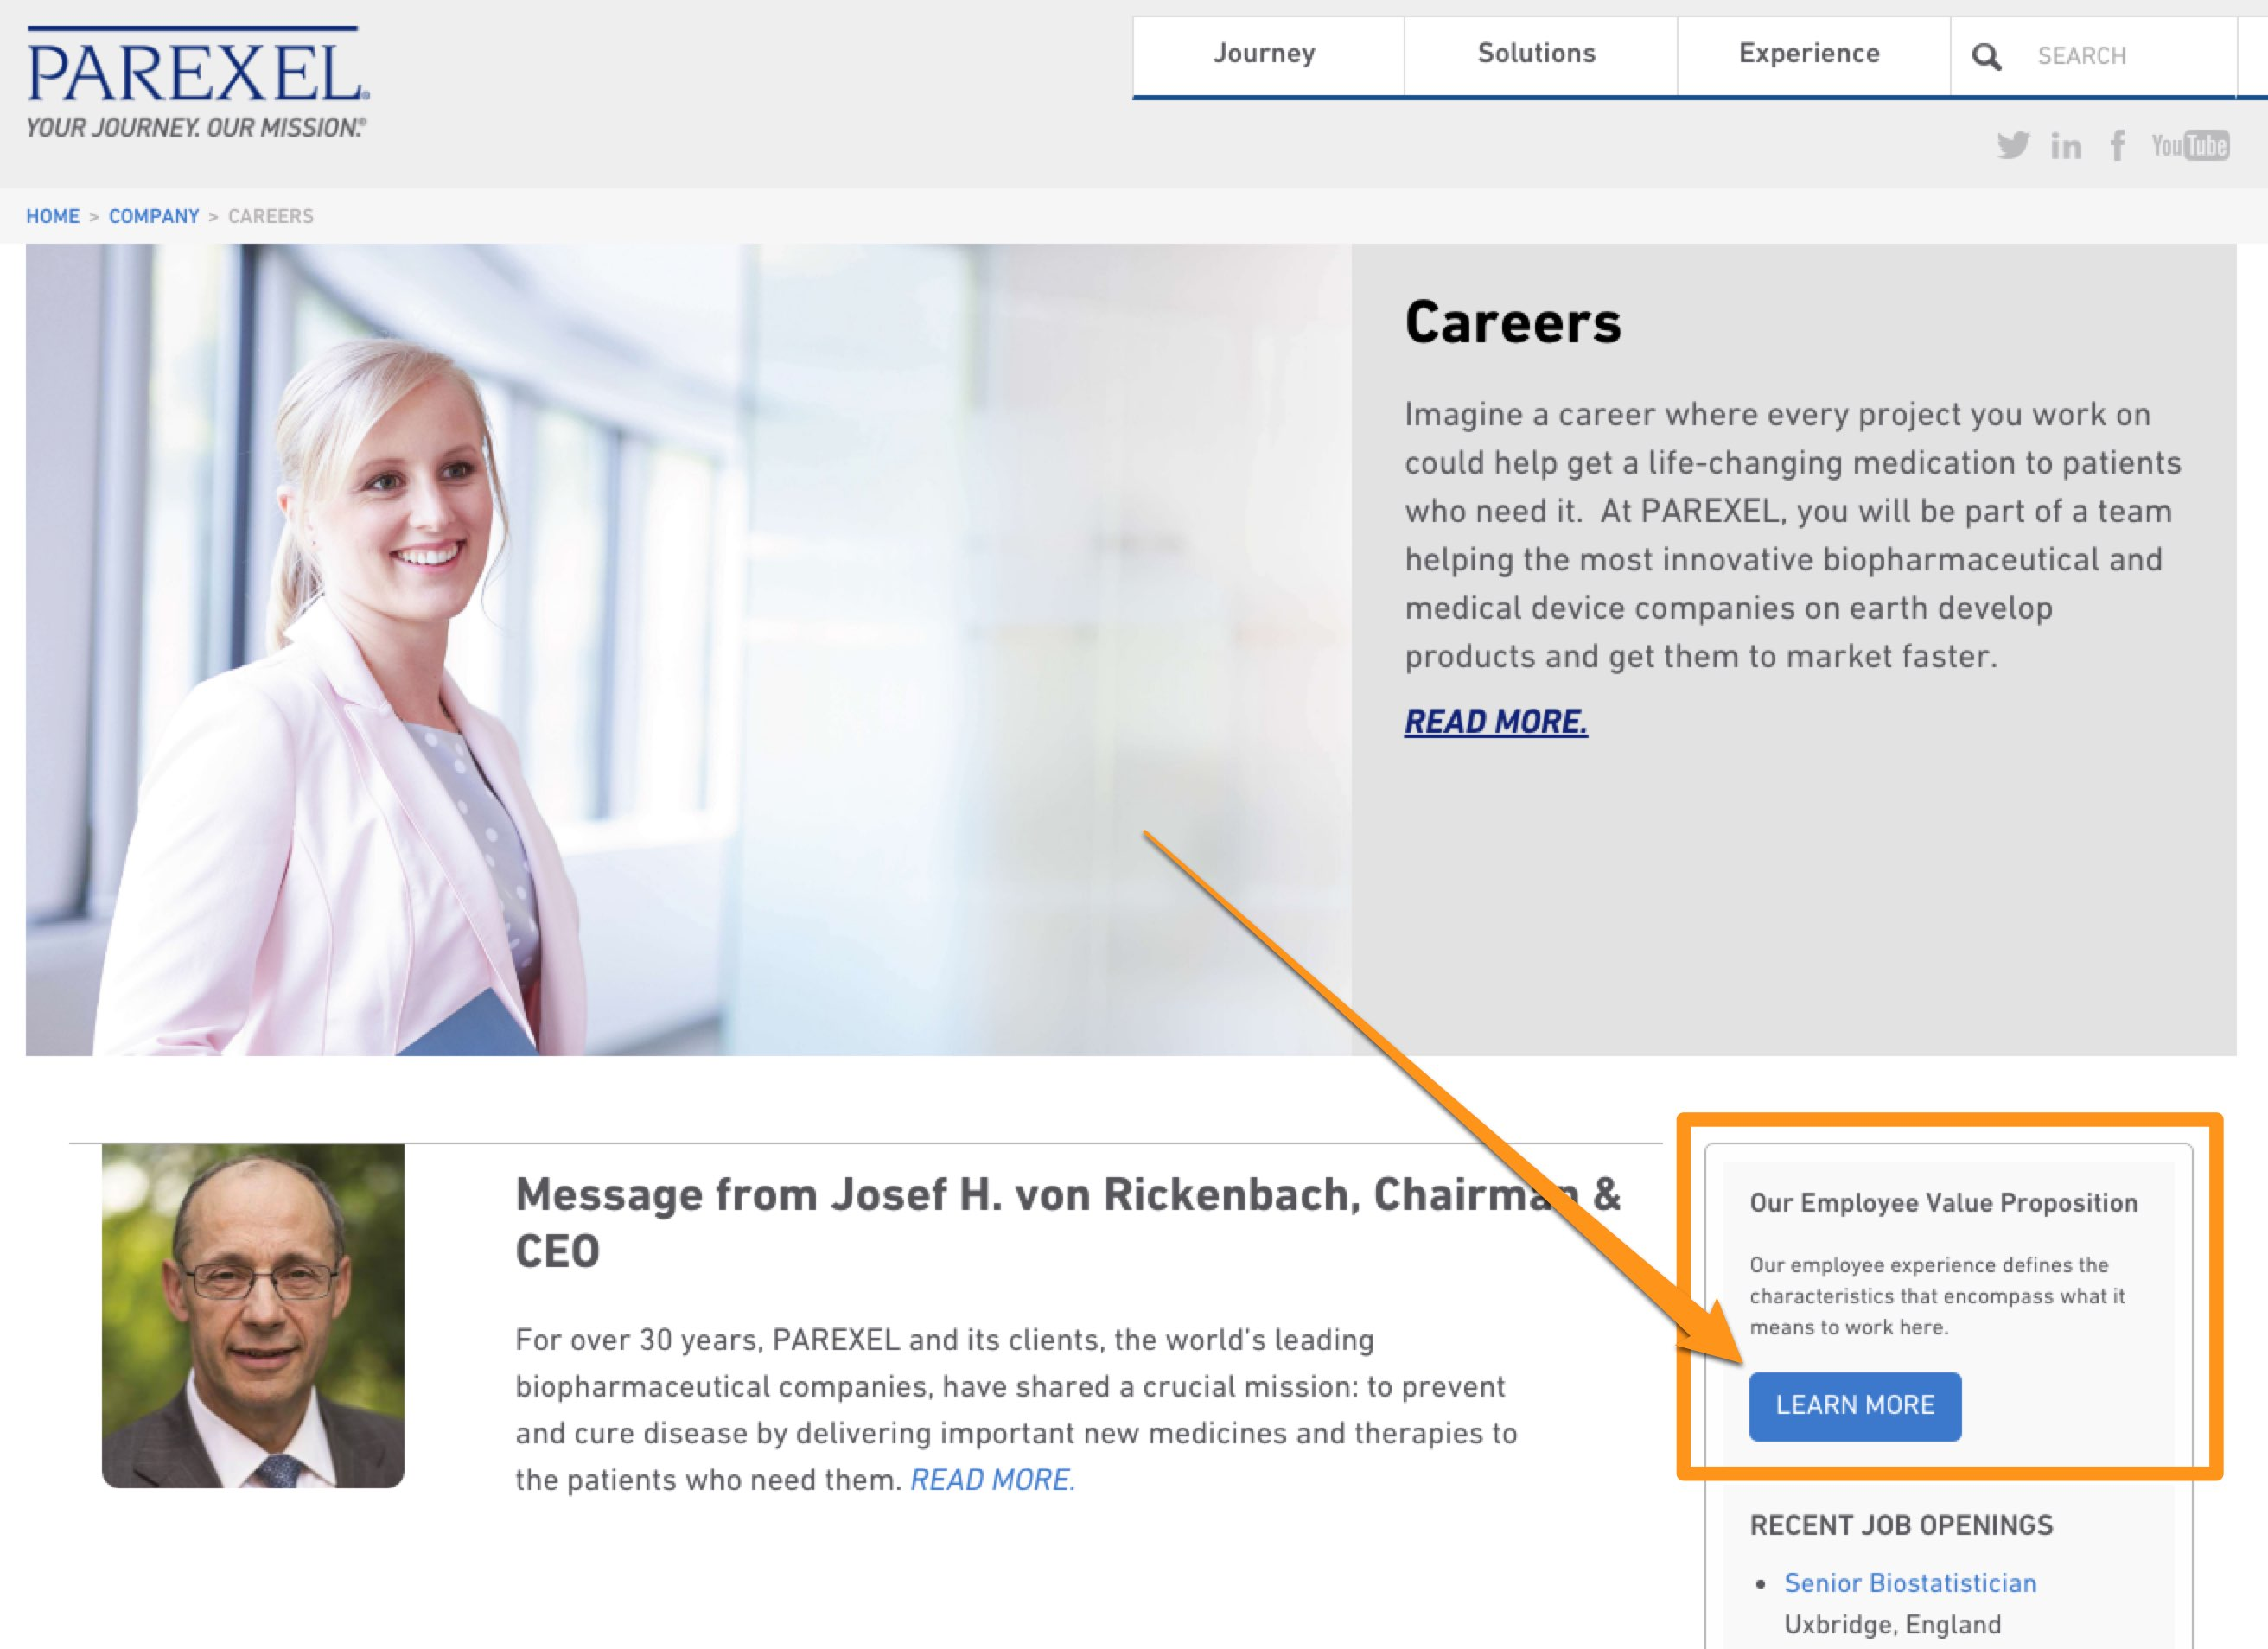 employee-value-proposition-evp-on-company-career-page-job-search